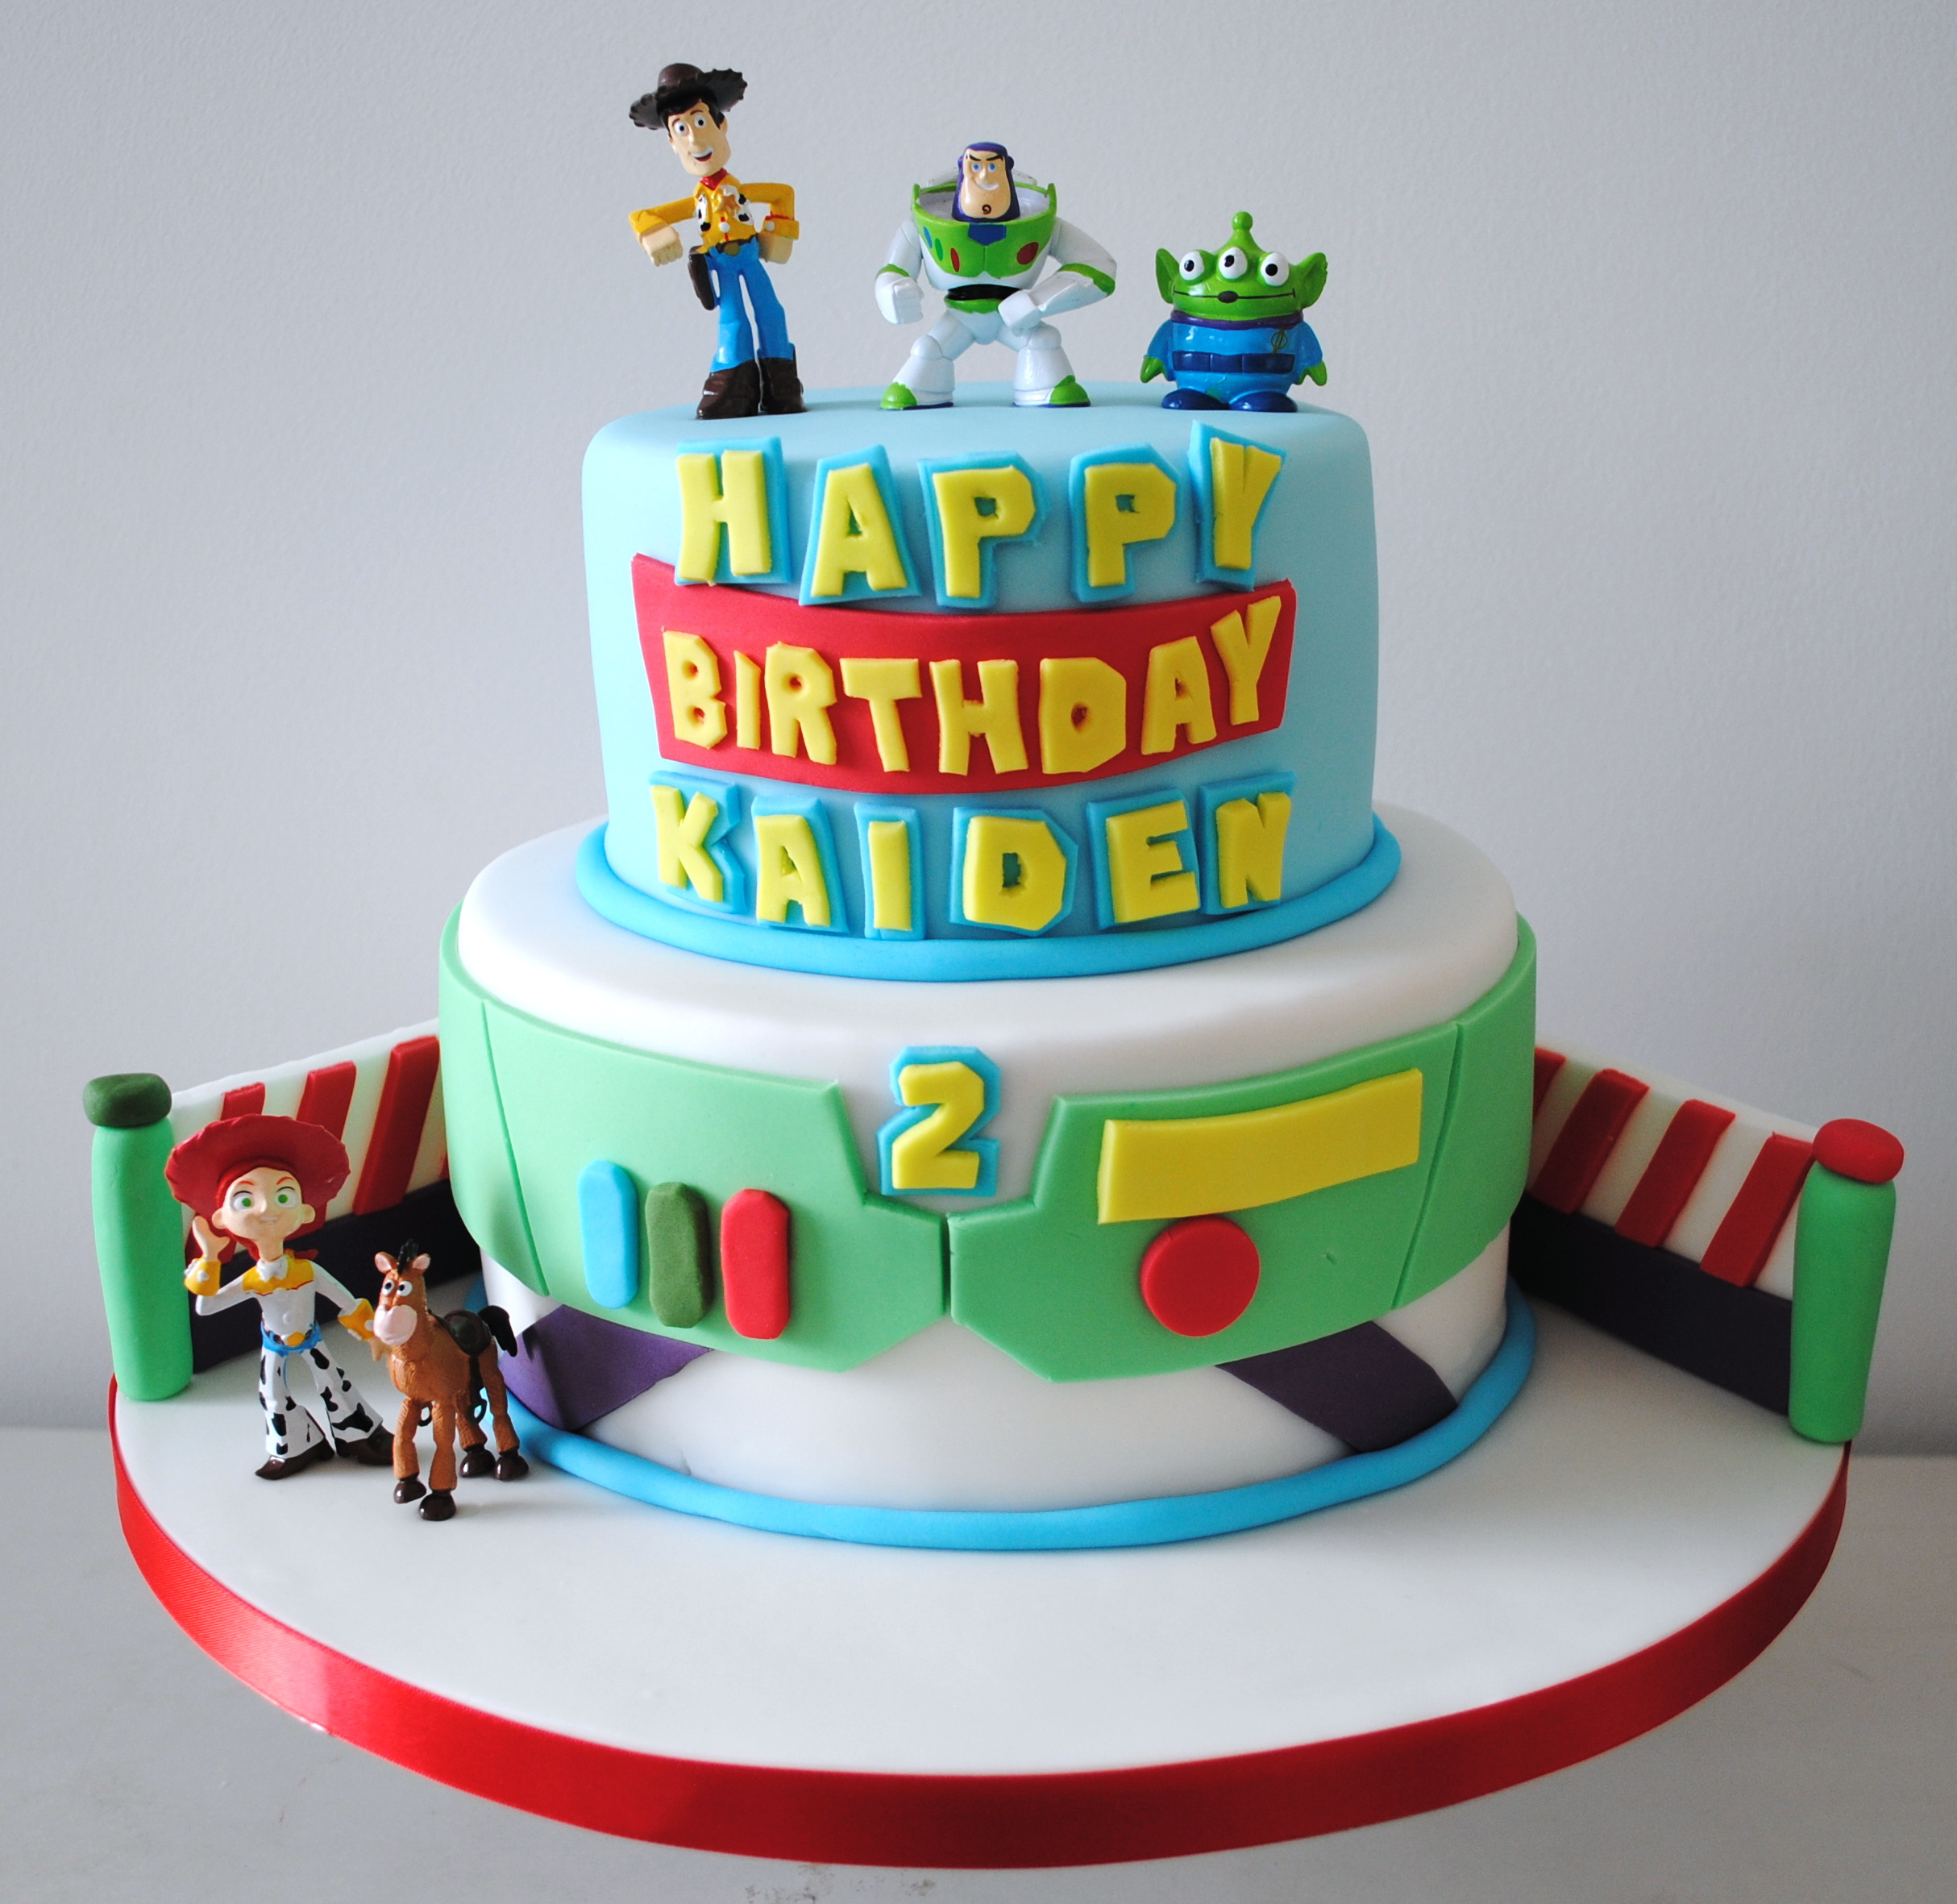 Excellent Images Tagged Celebration Cakes Miss Cupcakes Funny Birthday Cards Online Inifofree Goldxyz